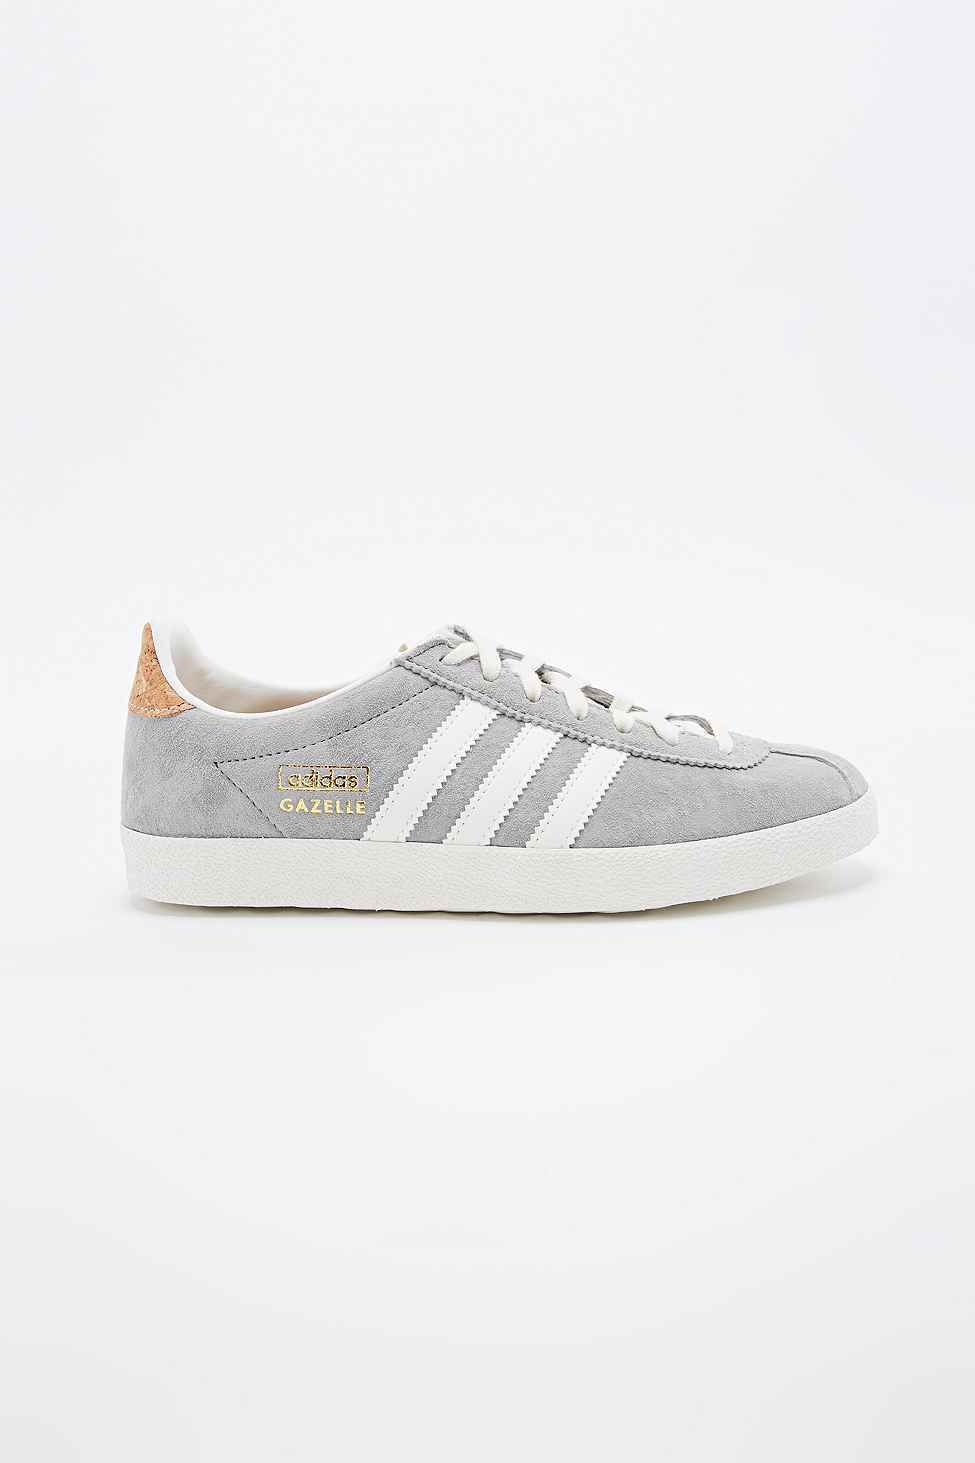 36762d35cd8 adidas Gazelle Suede Trainers in Grey | SNEAKER FEVER - Zapatos ...